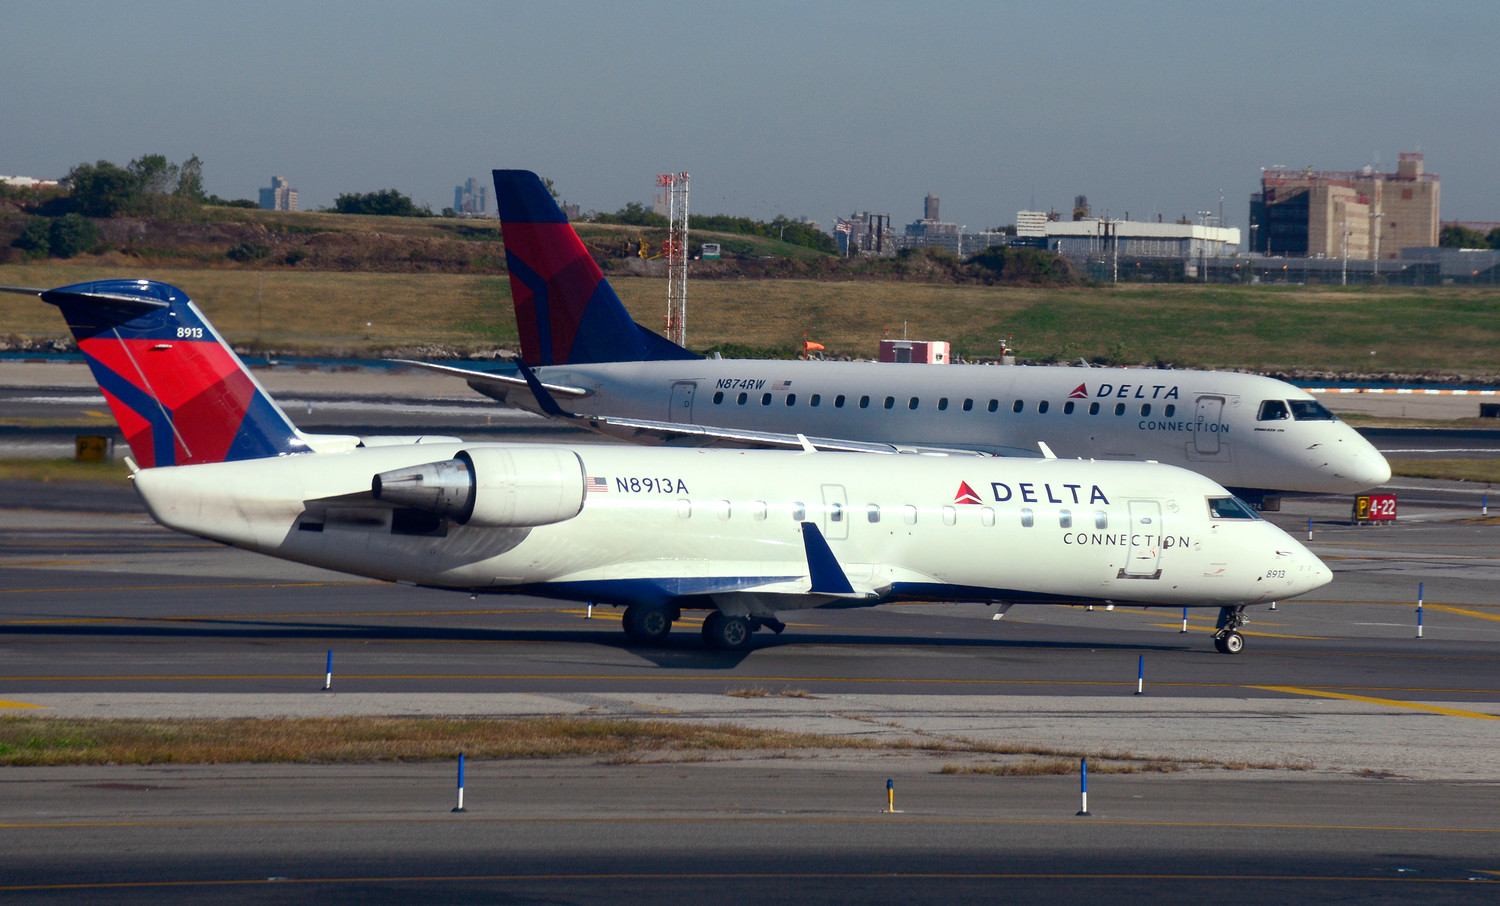 Two Delta Connection passenger jets at LaGuardia Airport last October.